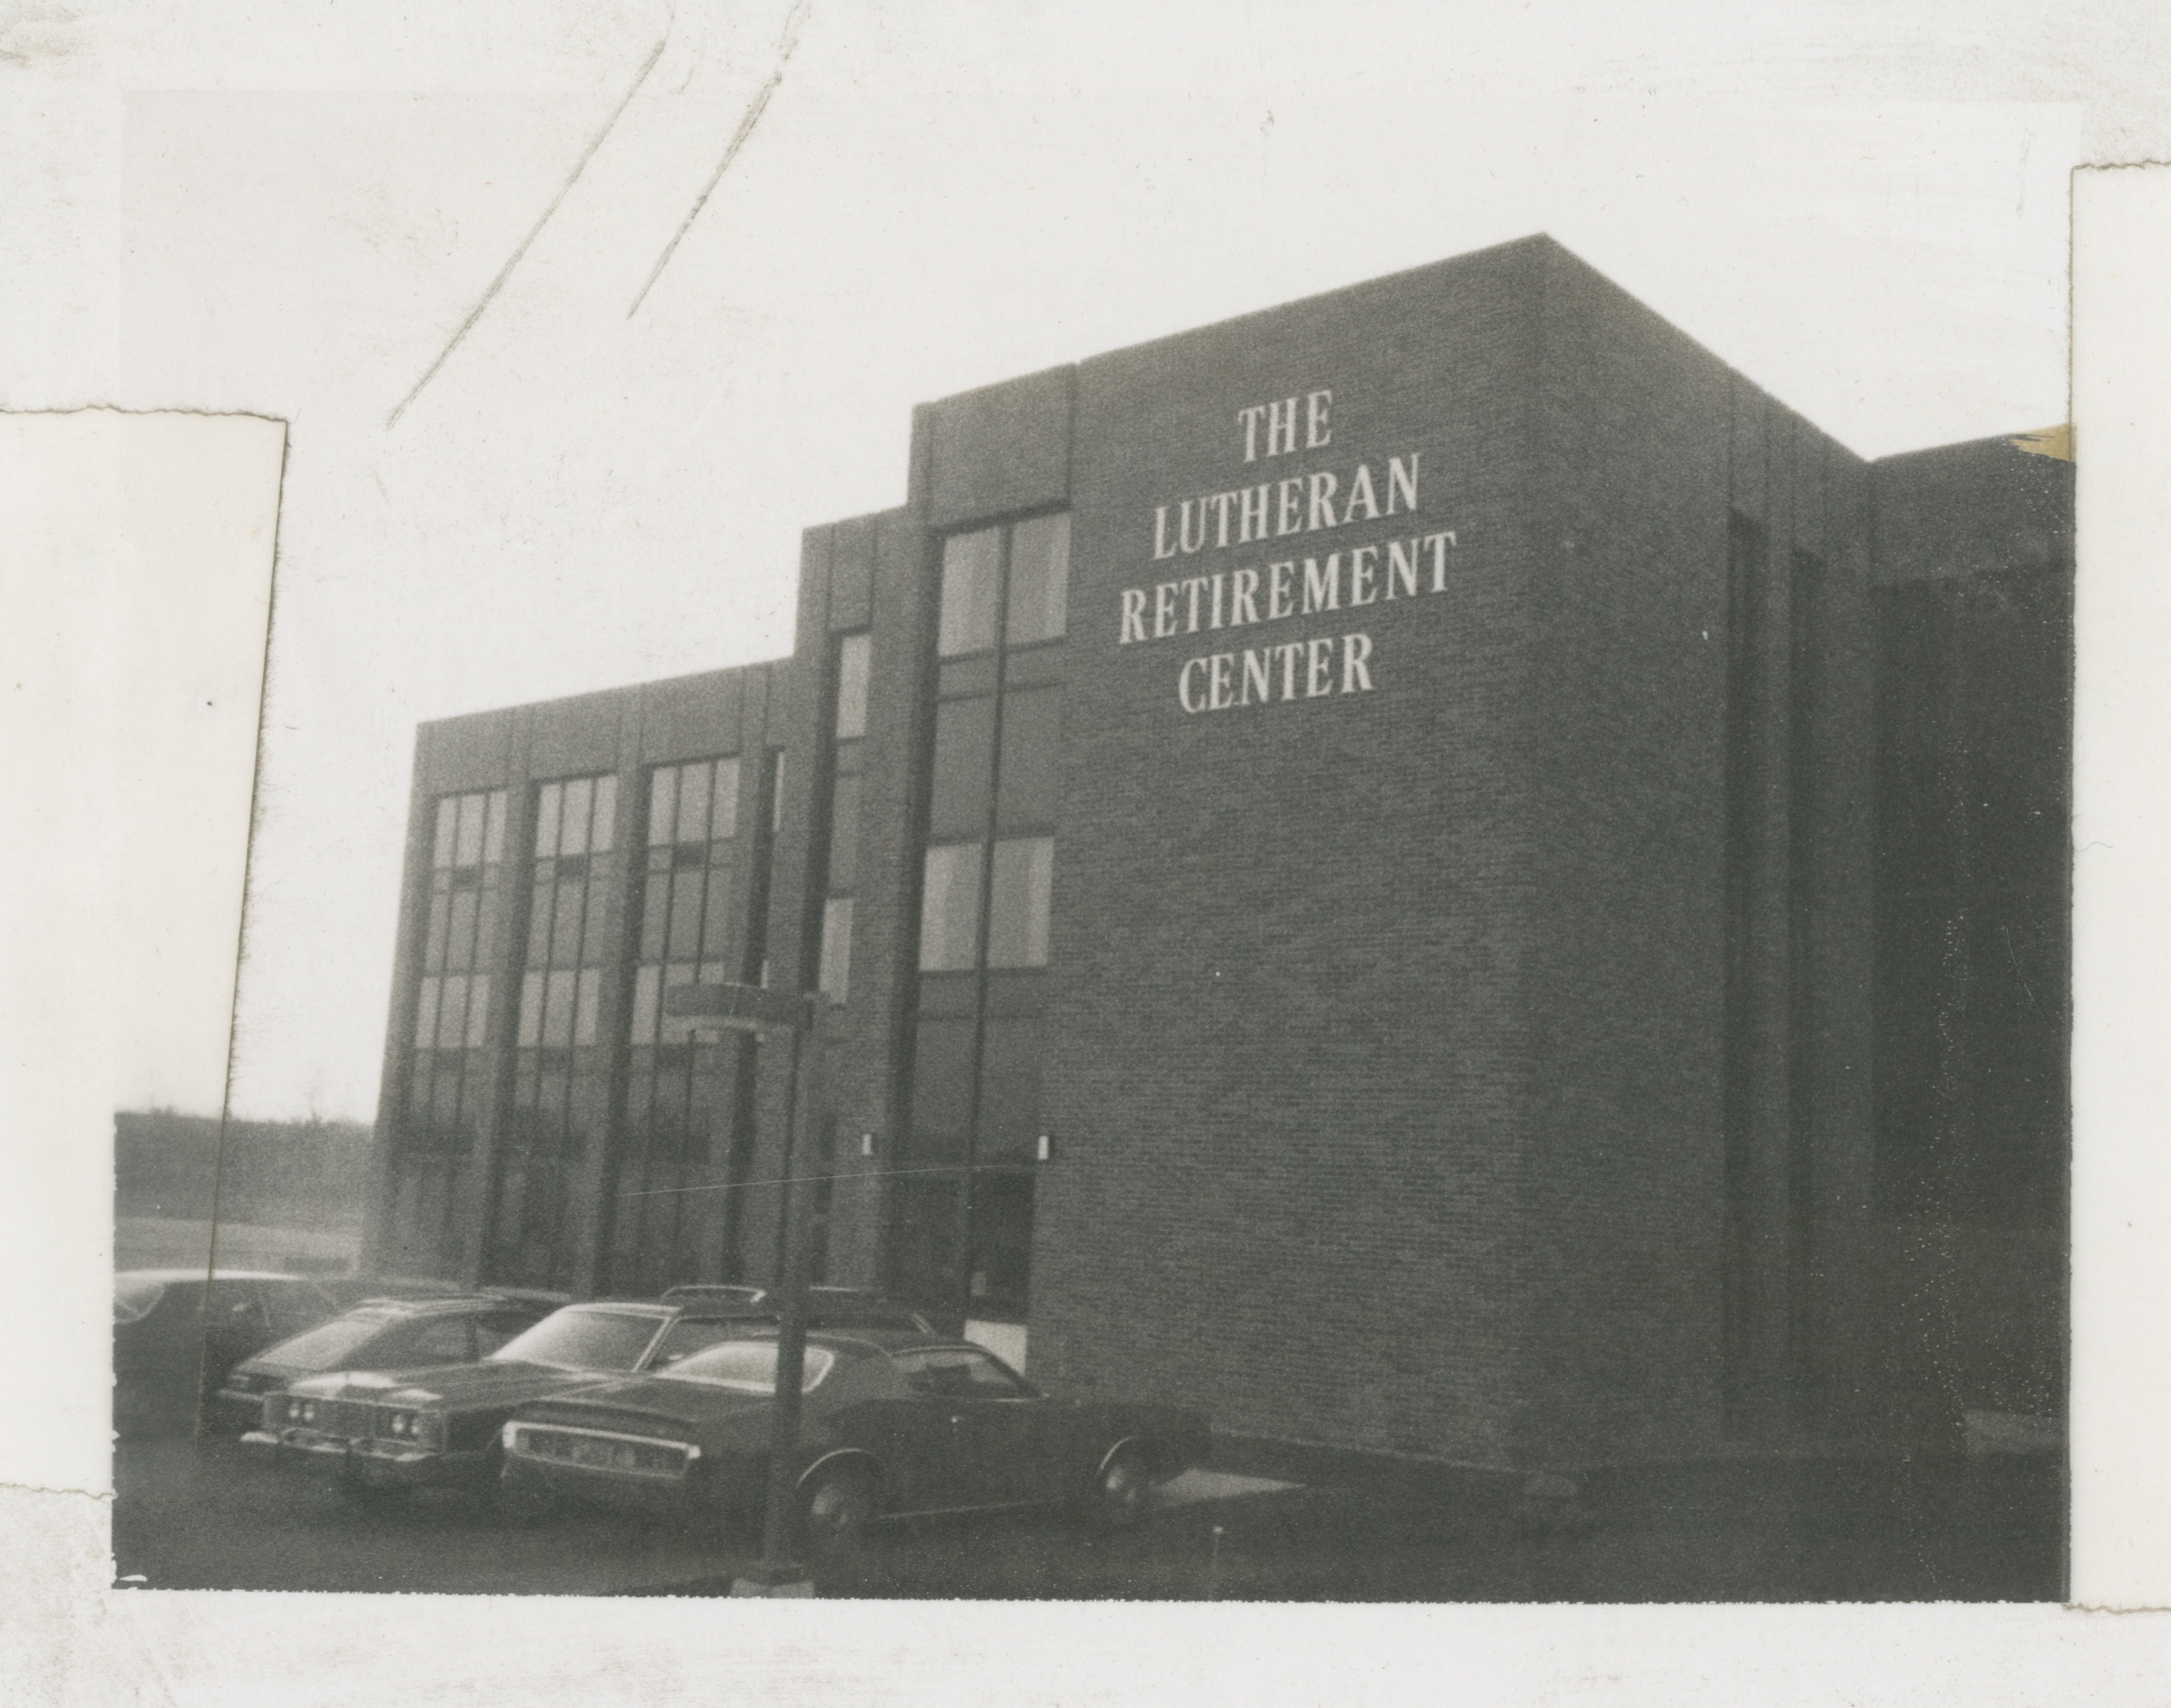 The Lutheran Retirement Center, 1974 image